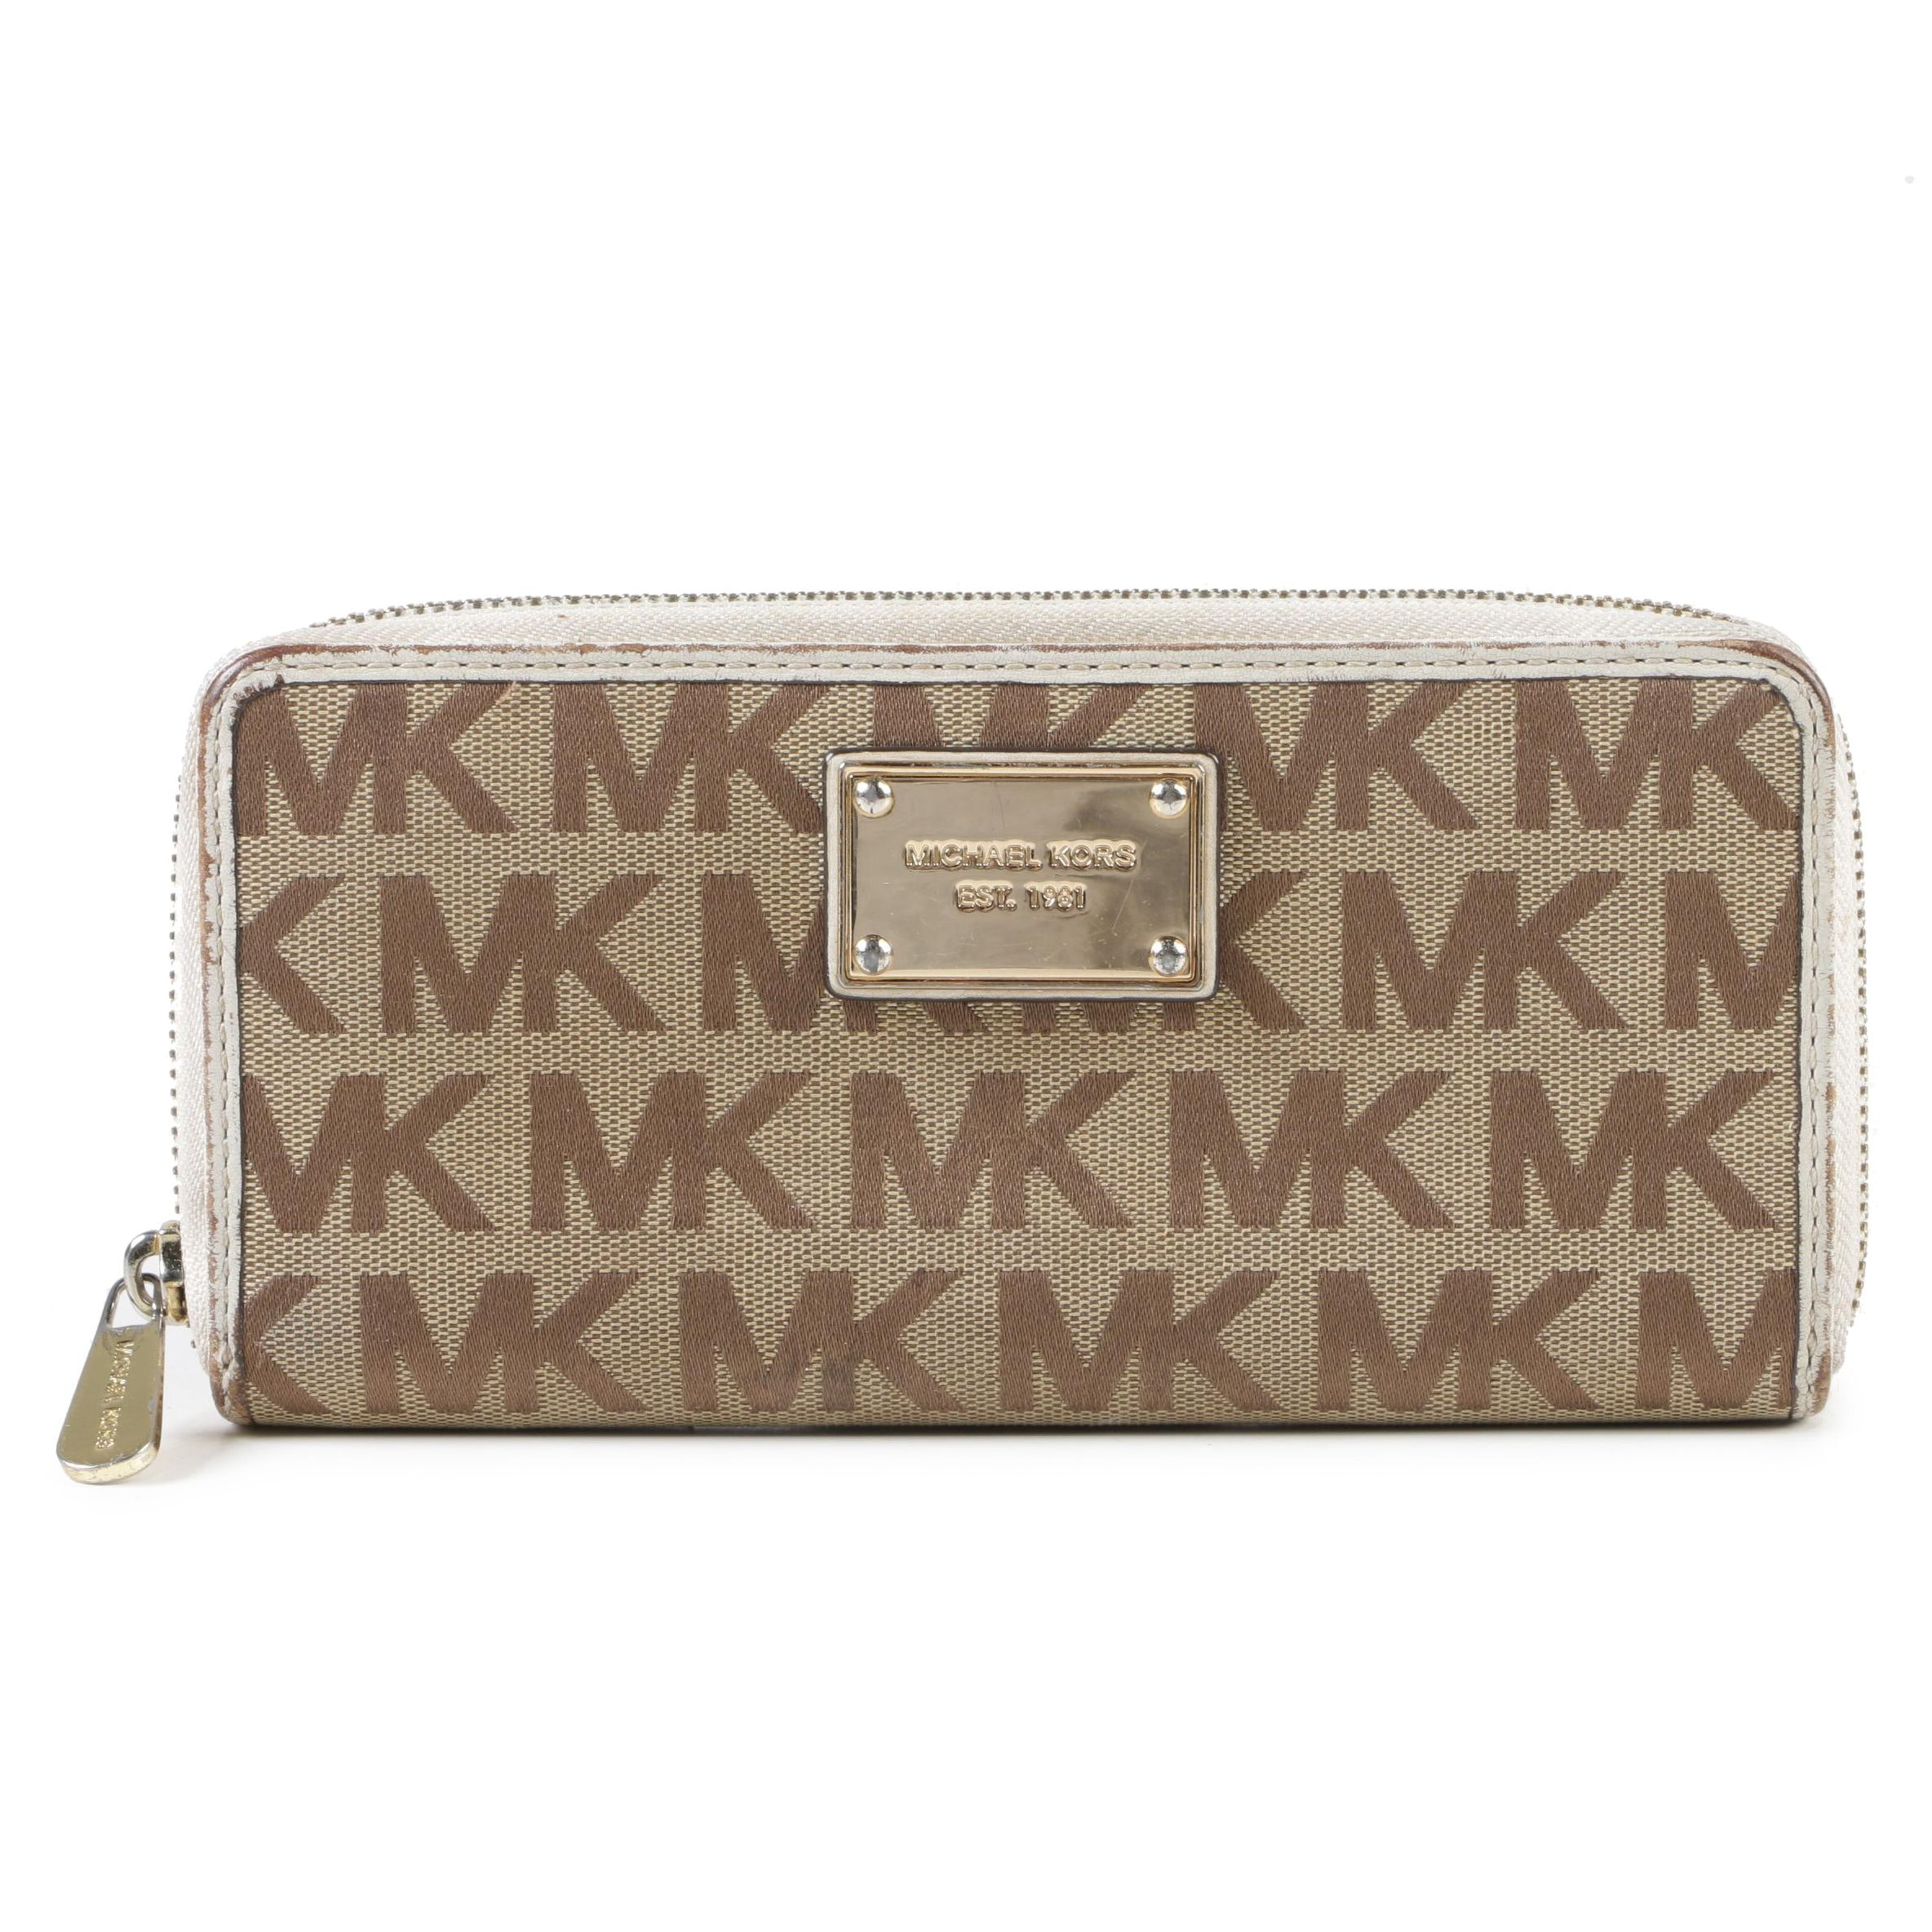 Michael Kors Tan and Brown Signature Canvas Zip Wallet